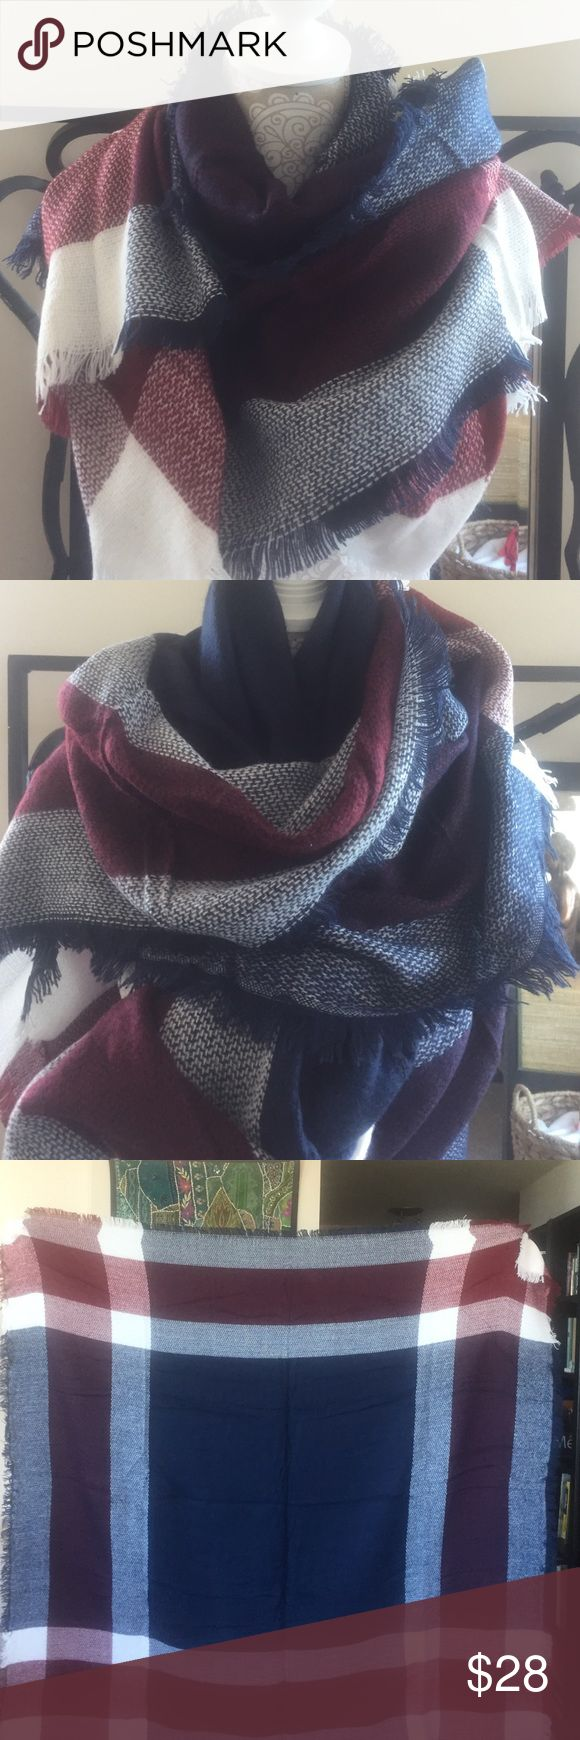 "Blanket Scarve Wrap/ Shawl This blanket scarf comes in plaid Burgundy, Navy Blue and cream. This scarf is made out of a super soft, lightweight, acrylic polyester, woven fabric and measures 58"" by 55""""inches square.  This scarf is perfect for traveling, cold nights around the camp fire, and keeping warm at the football games because it is large enough to use as a blanket or wrap.  Plus, its so cute you can't help but to make it your favorite outdoor scarf! TANAH Accessories Scarves & Wraps"